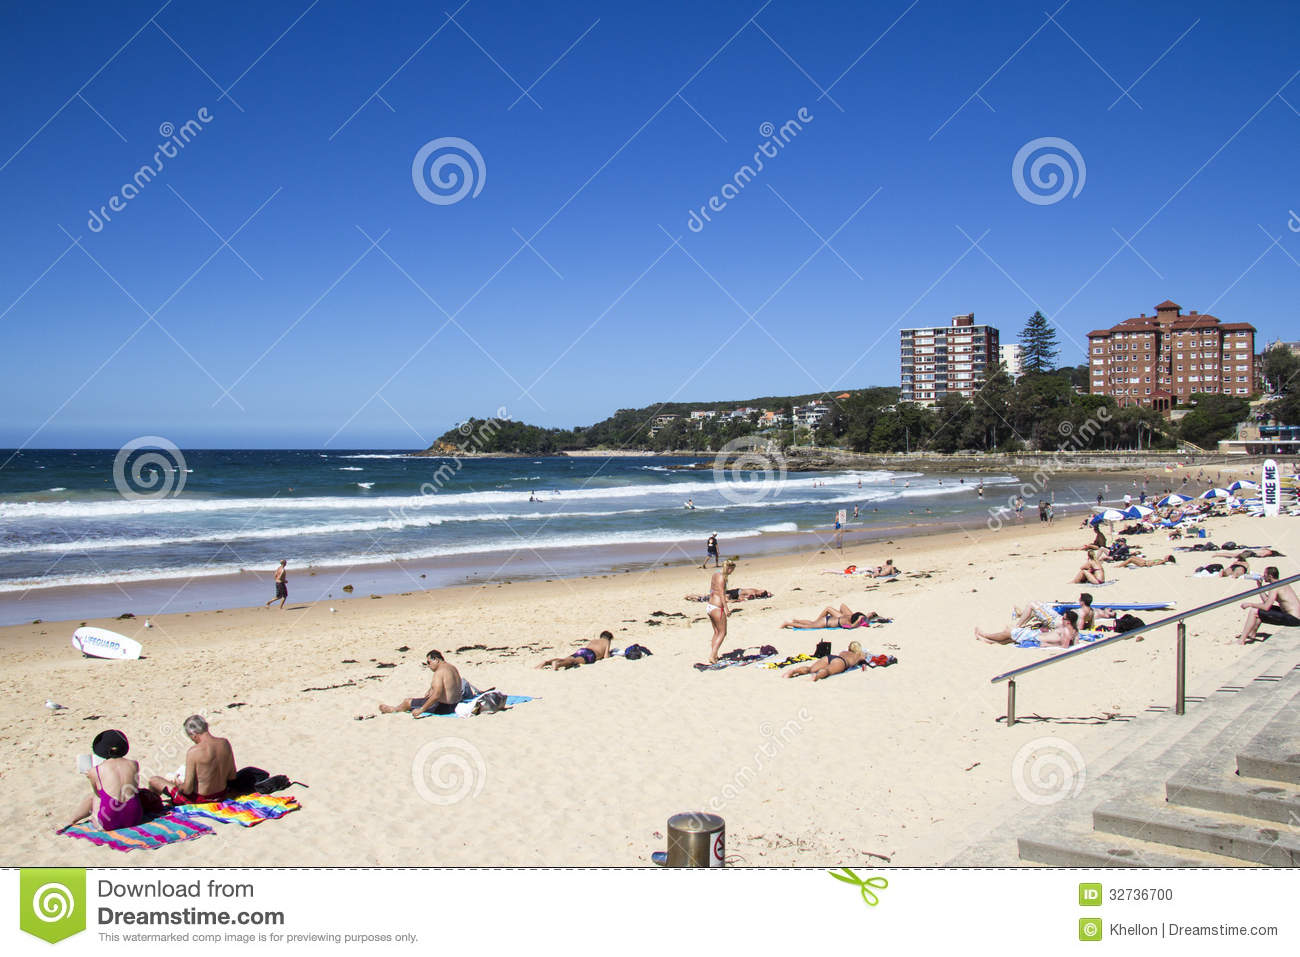 Manly Beach Sydneyaustralia March 13th People Relaxing On The